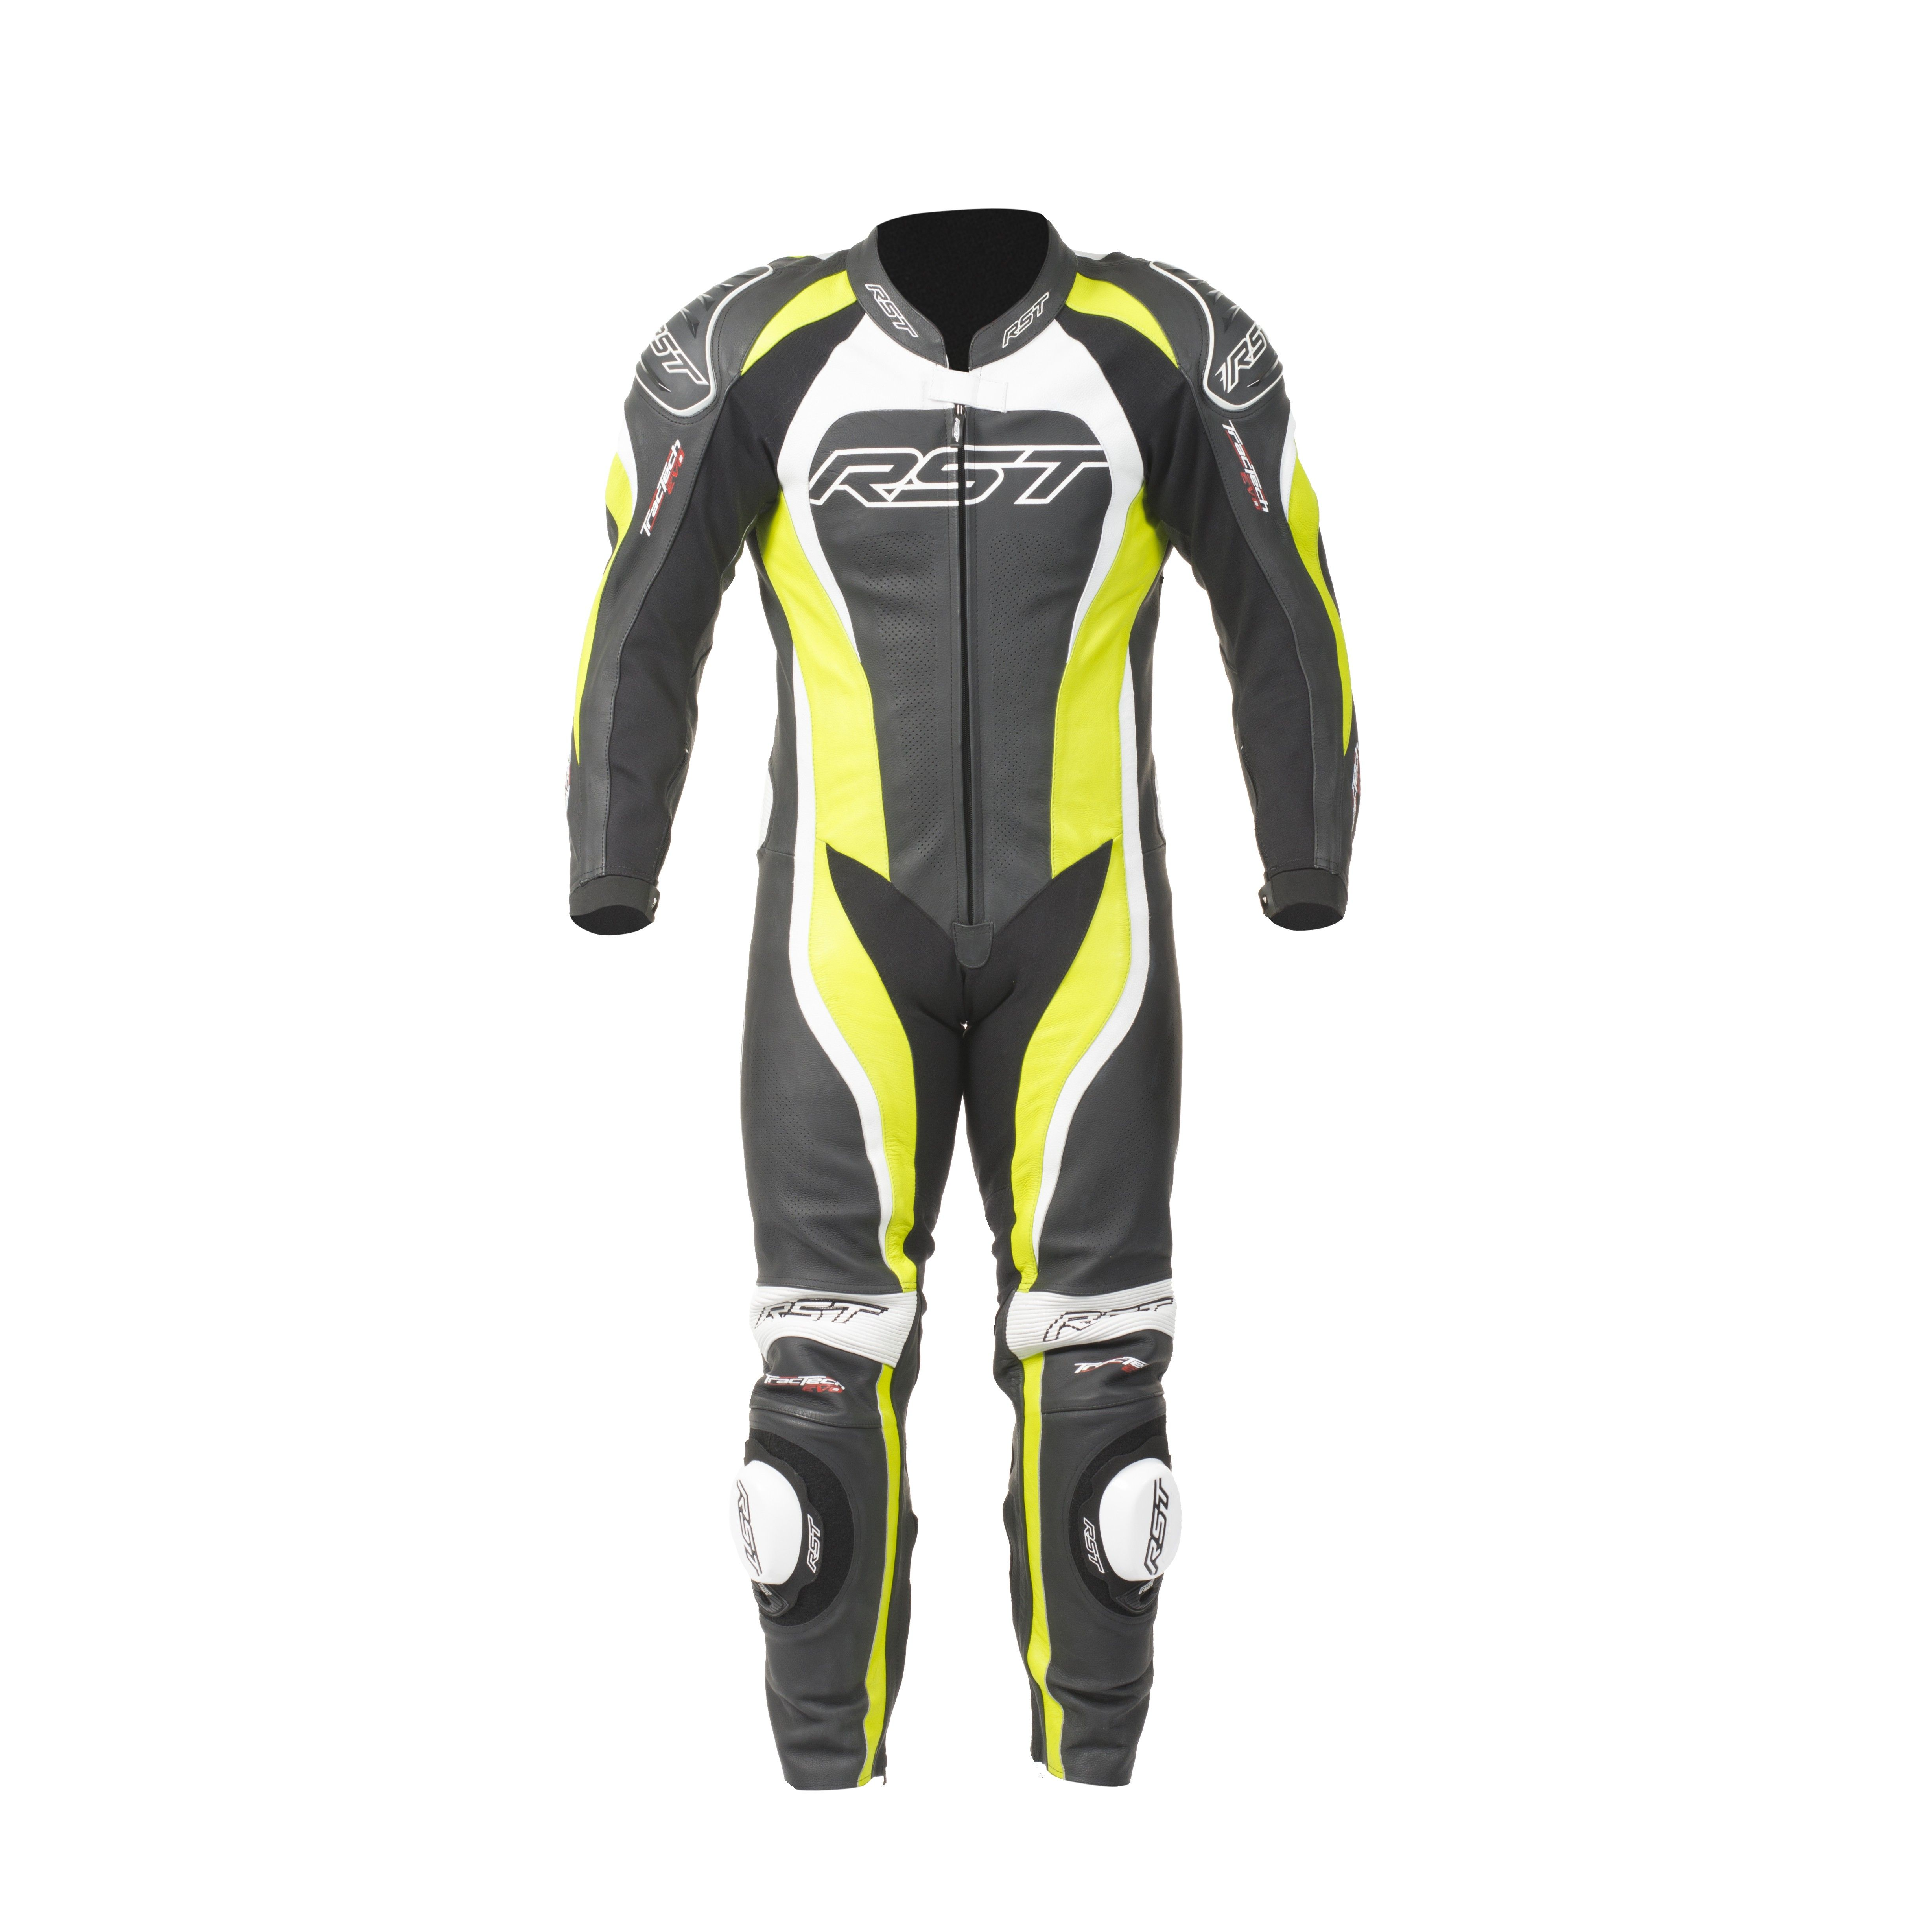 Rst Tractech Evo Ii One Piece Suit One Piece Suit Suits One Piece